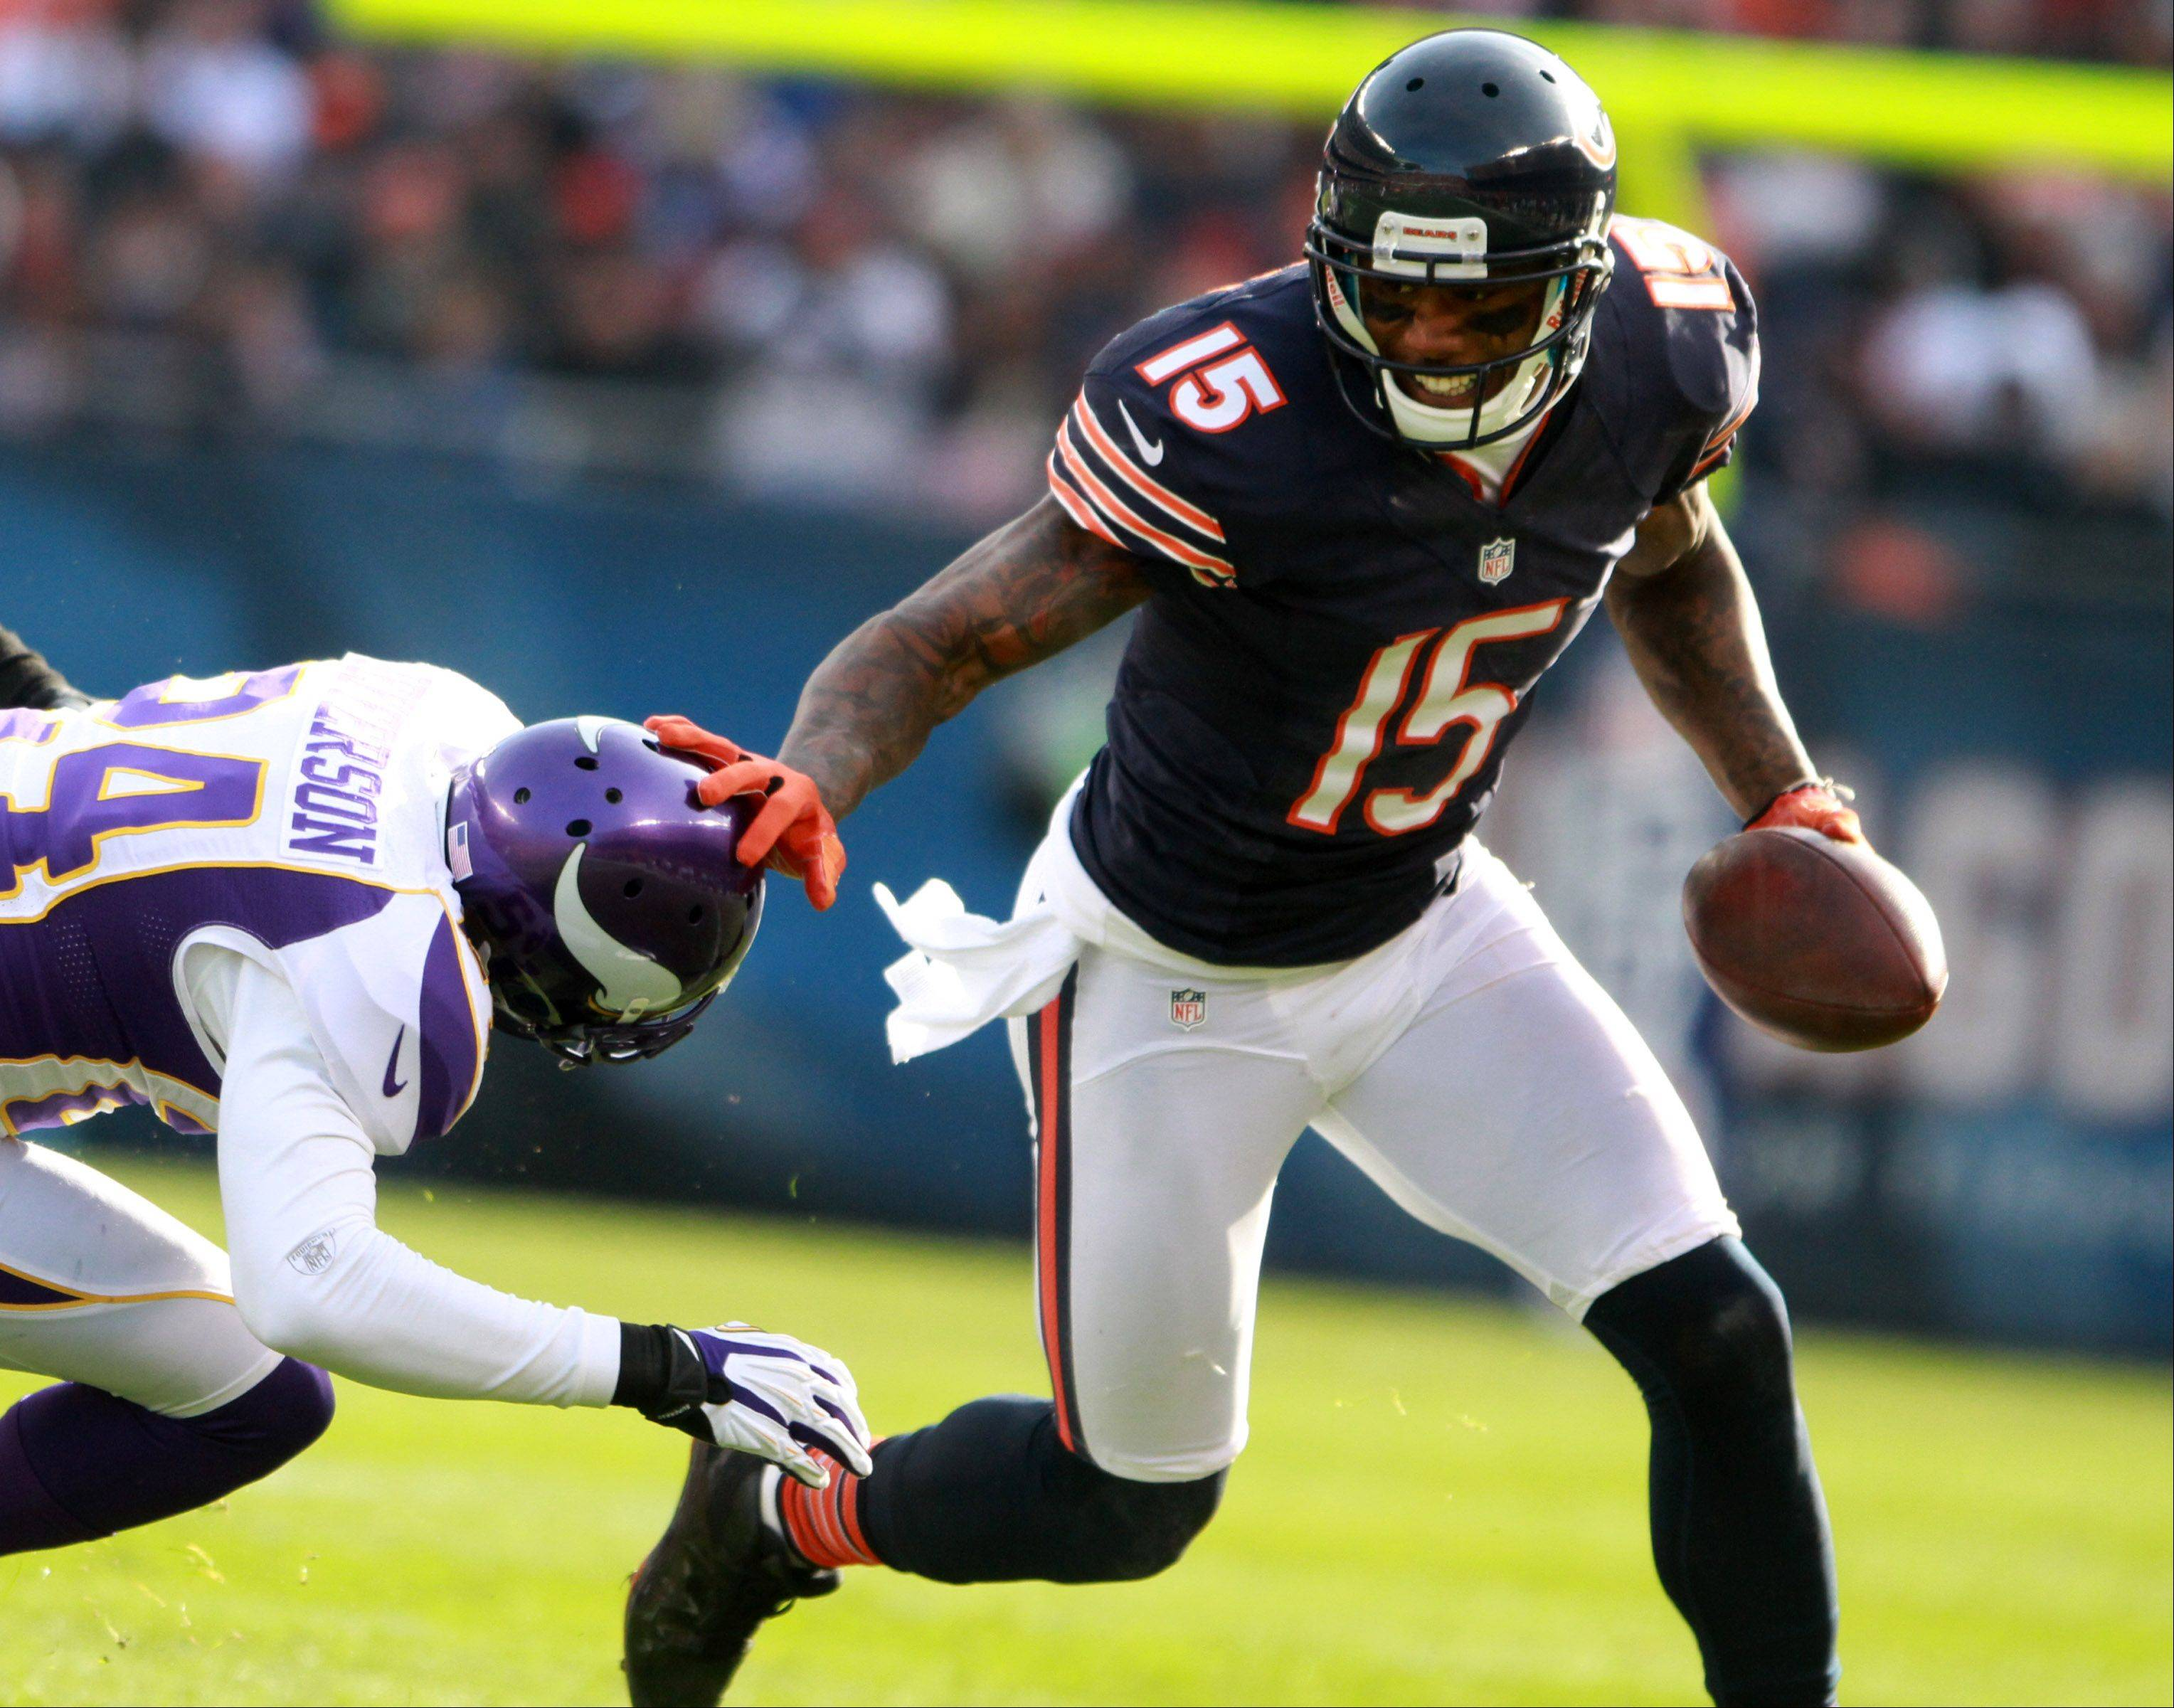 Chicago Bears wide receiver Brandon Marshall fights off Minnesota Vikings cornerback A.J. Jefferson after catching a pass from quarterback Jay Cutler at Soldier Field Sunday.